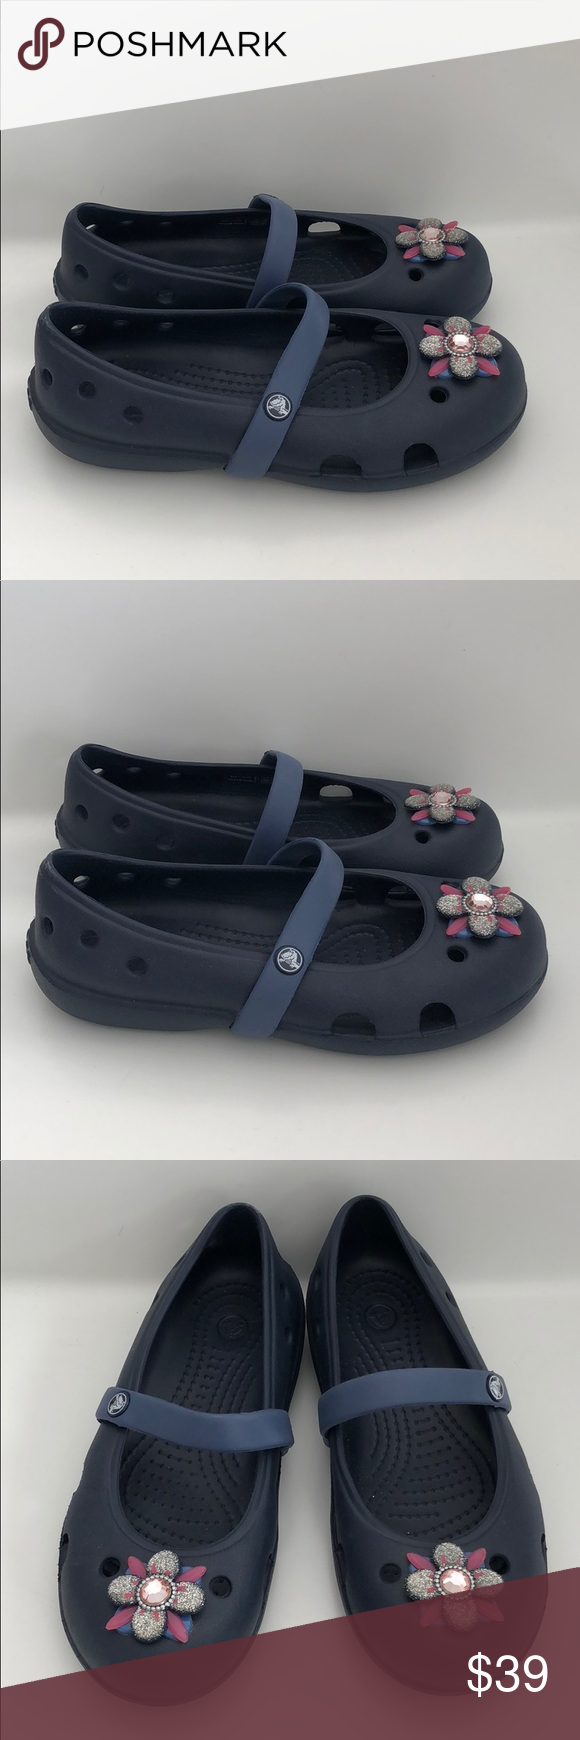 Crocs Girls Shoes Size 13 New without